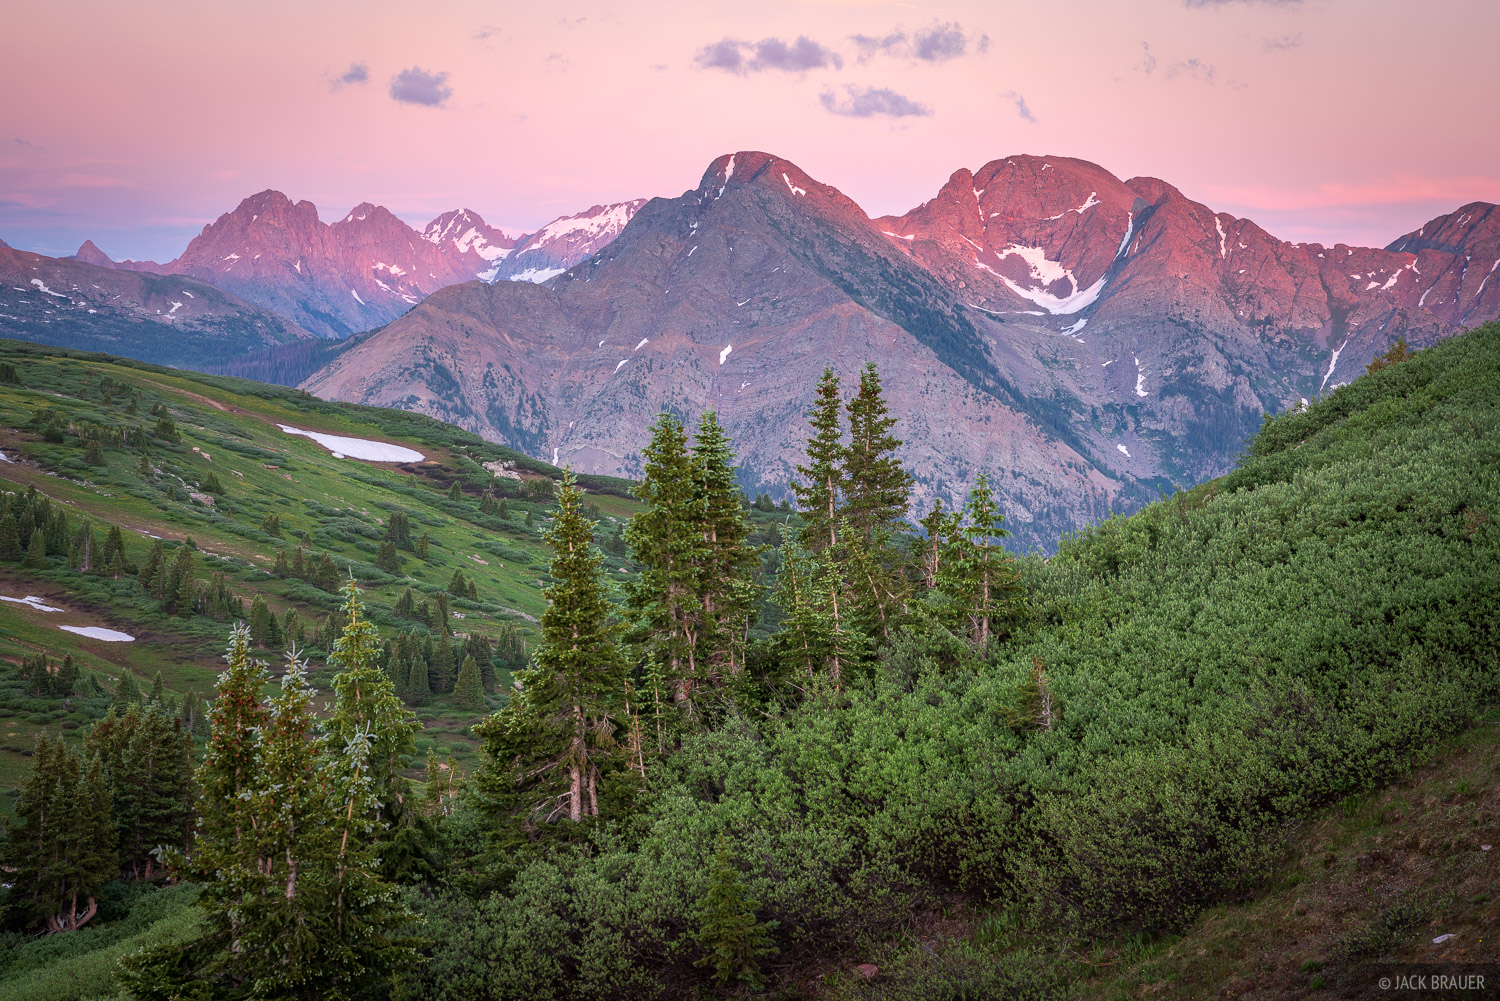 Animas Mountain, Colorado, Needle Mountains, North Twilight Peak, San Juan Mountains, Twilight Peak, Weminuche Wilderness, West Needle Mountains, sunset, photo